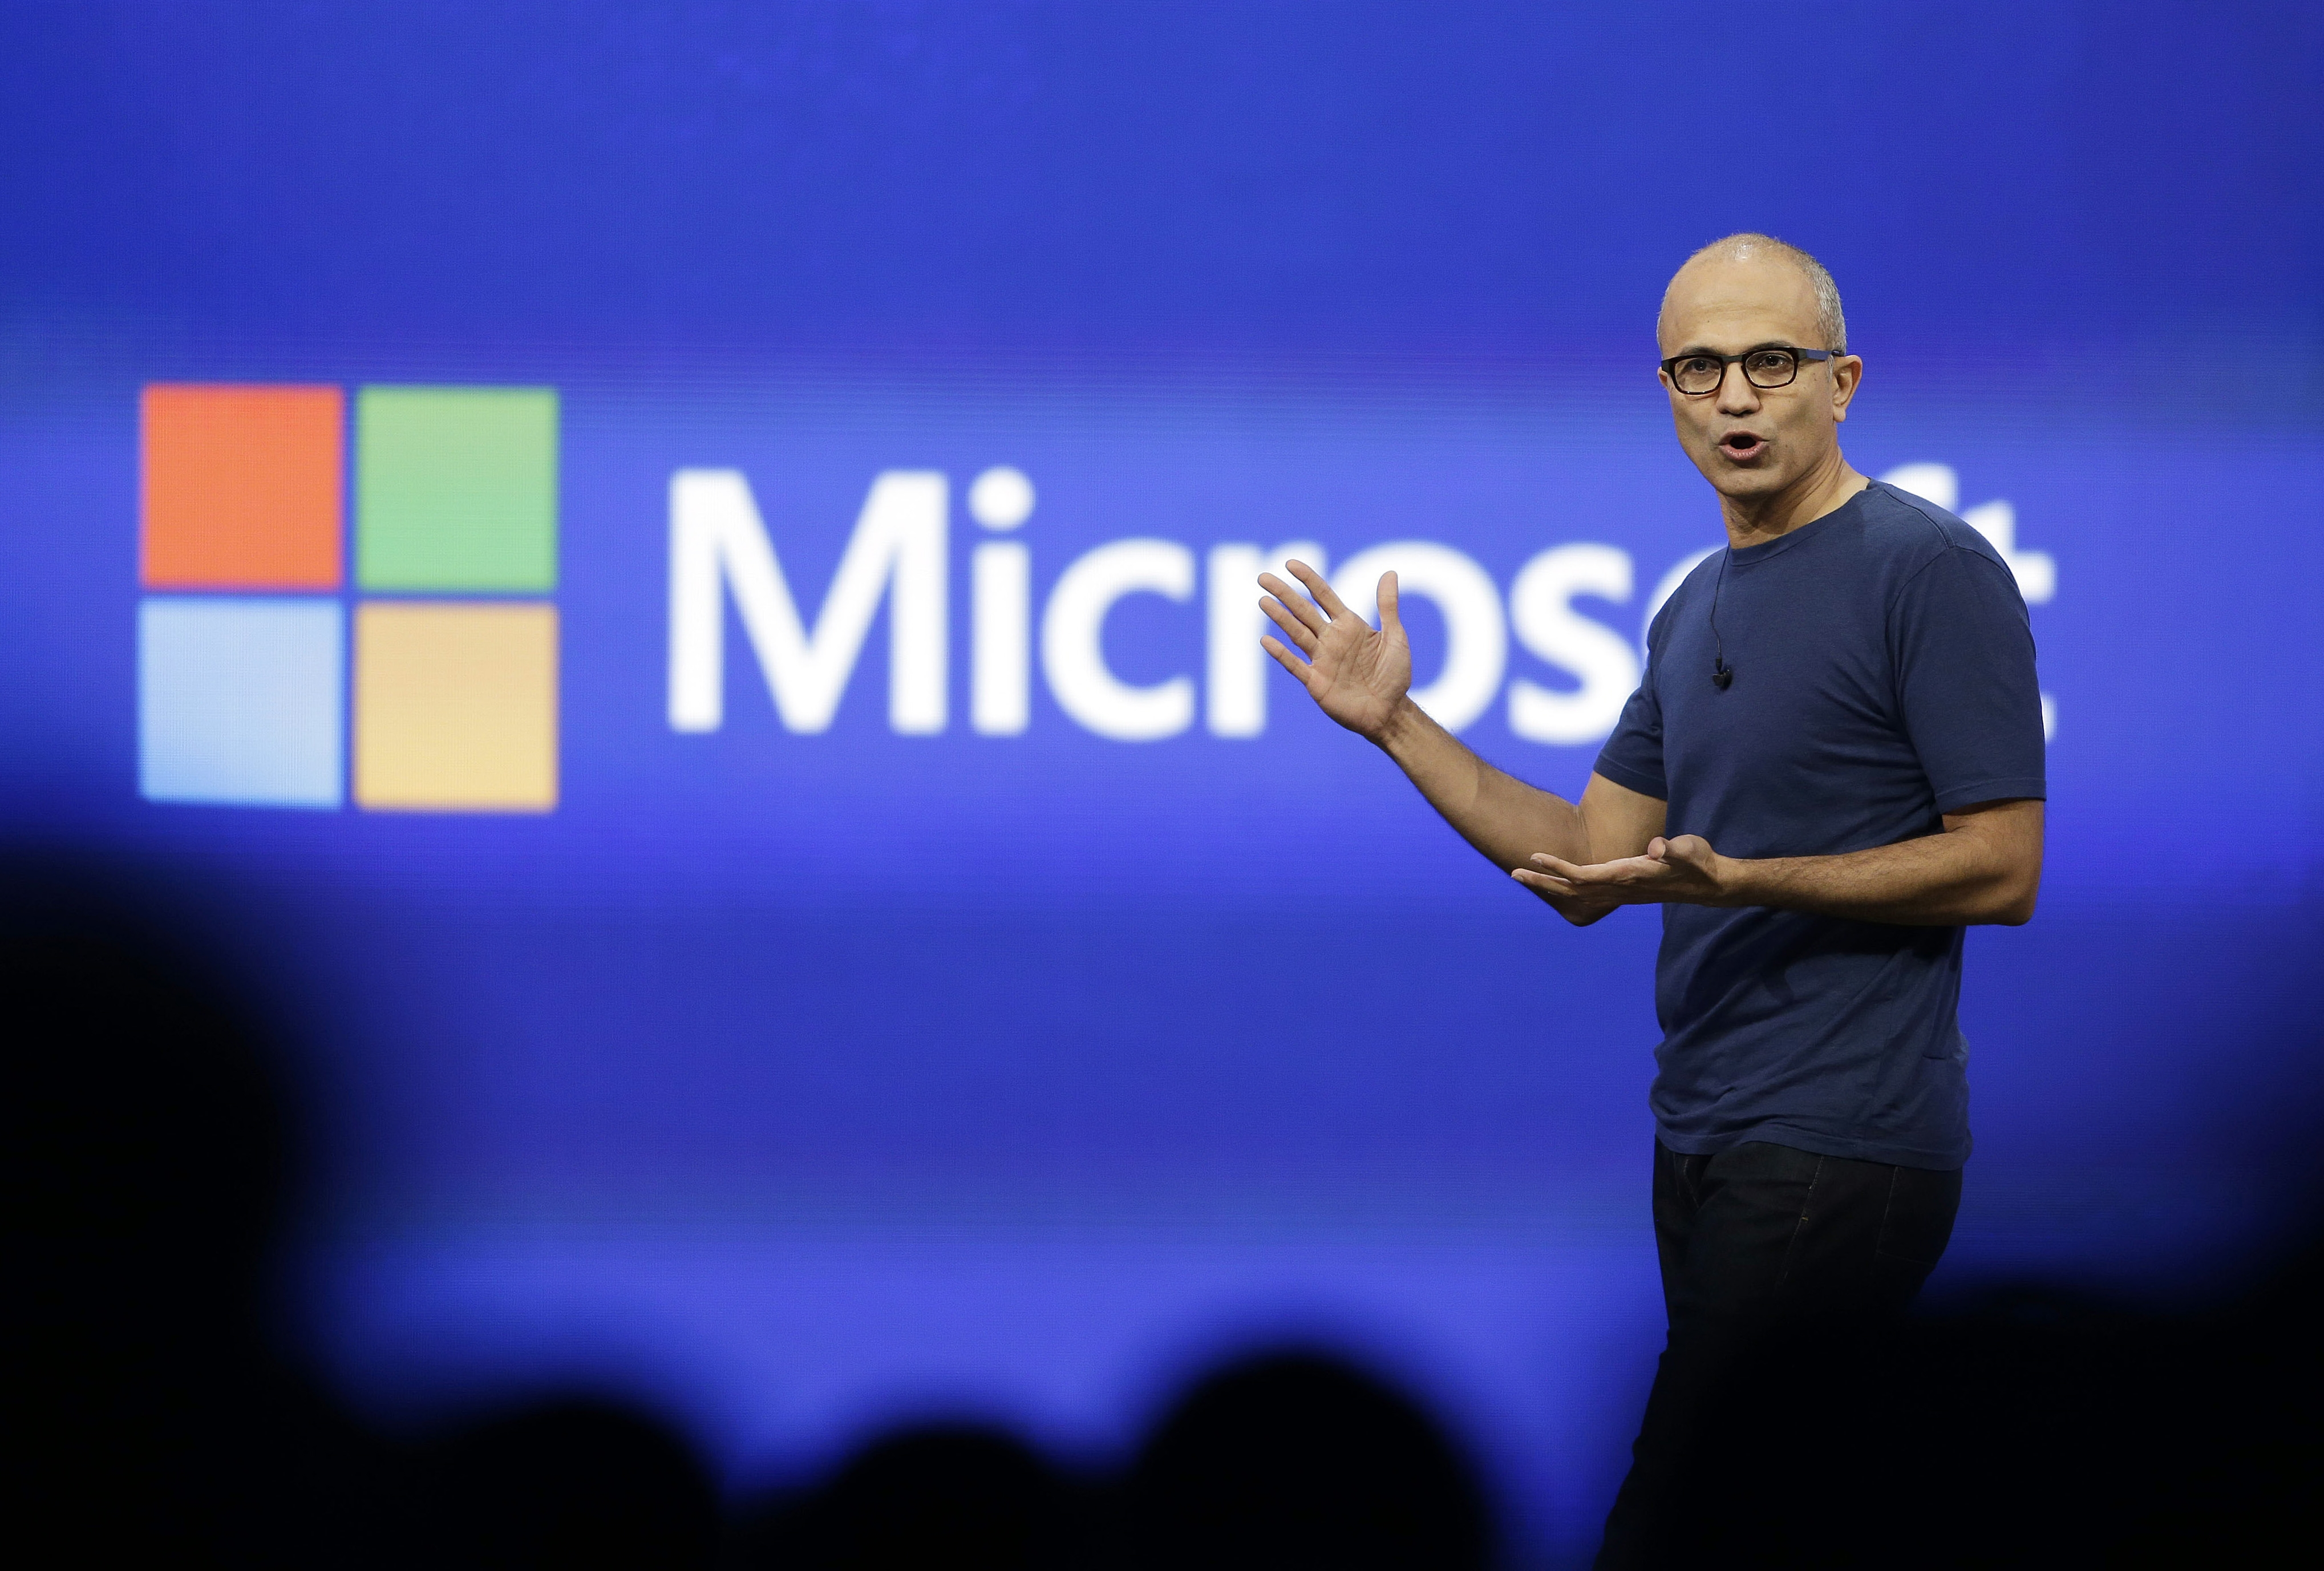 Microsoft CEO Satya Nadella announced the layoff 18,000 workers.